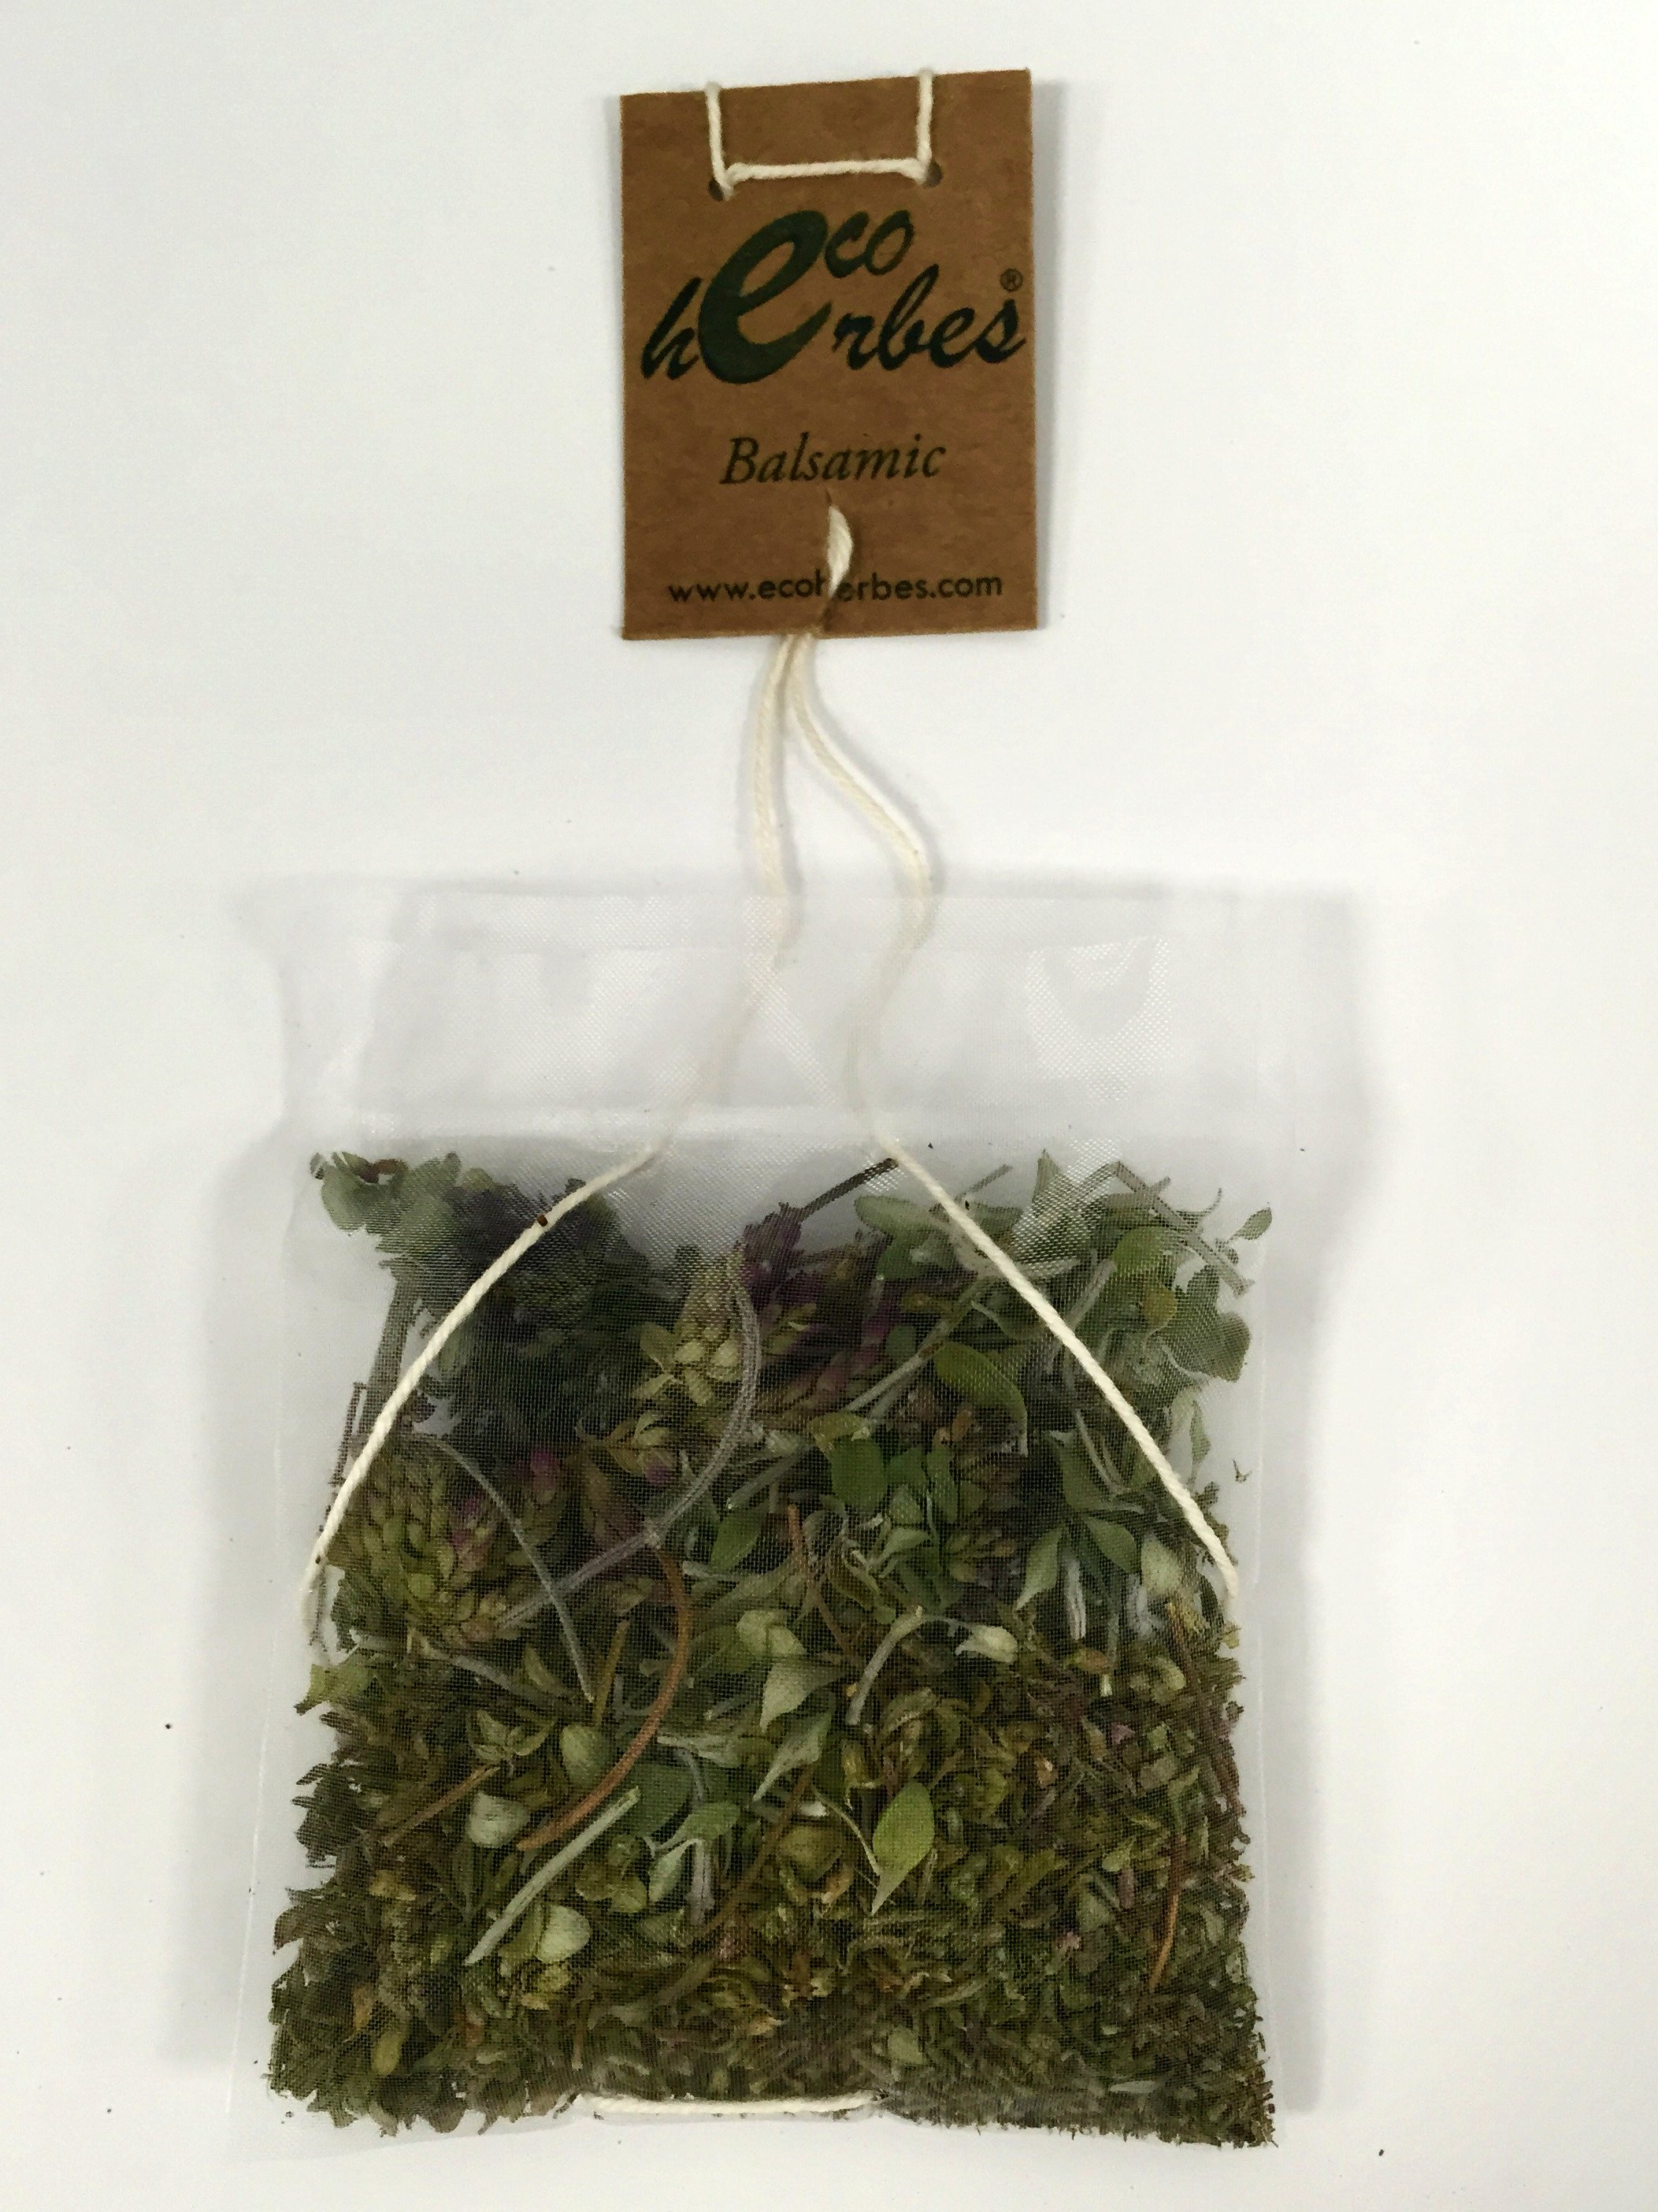 infusiones ecologicas, ecoherbes